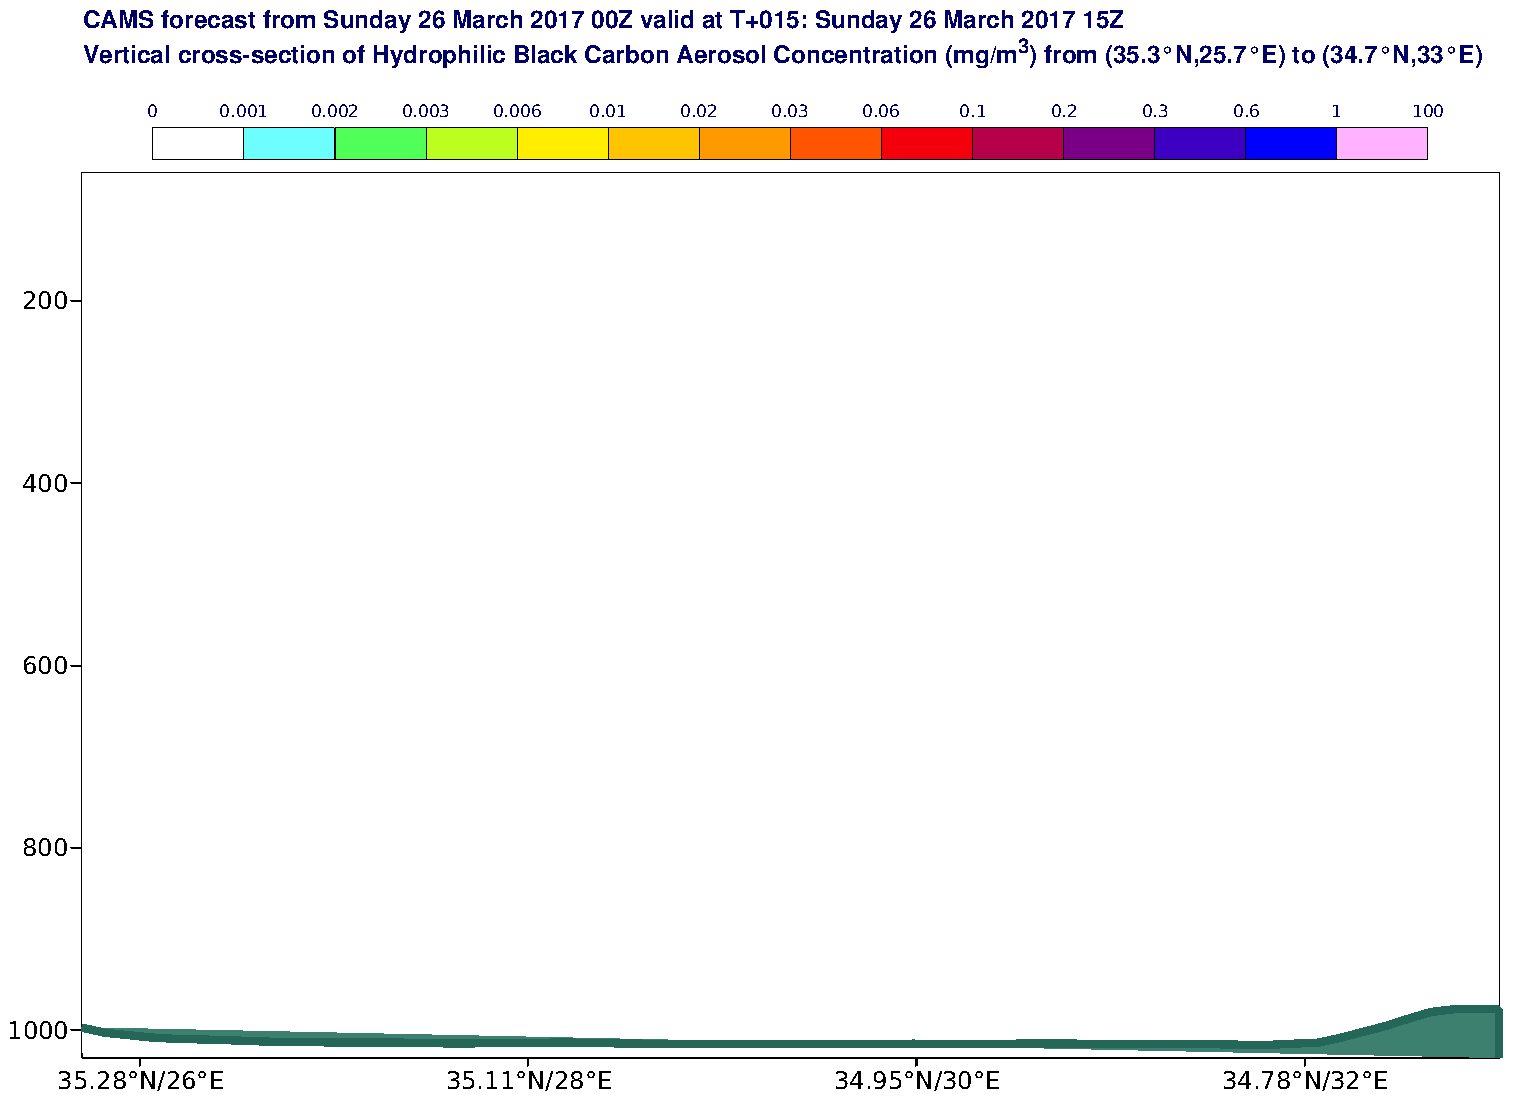 Vertical cross-section of Hydrophilic Black Carbon Aerosol Concentration (mg/m3) valid at T15 - 2017-03-26 15:00